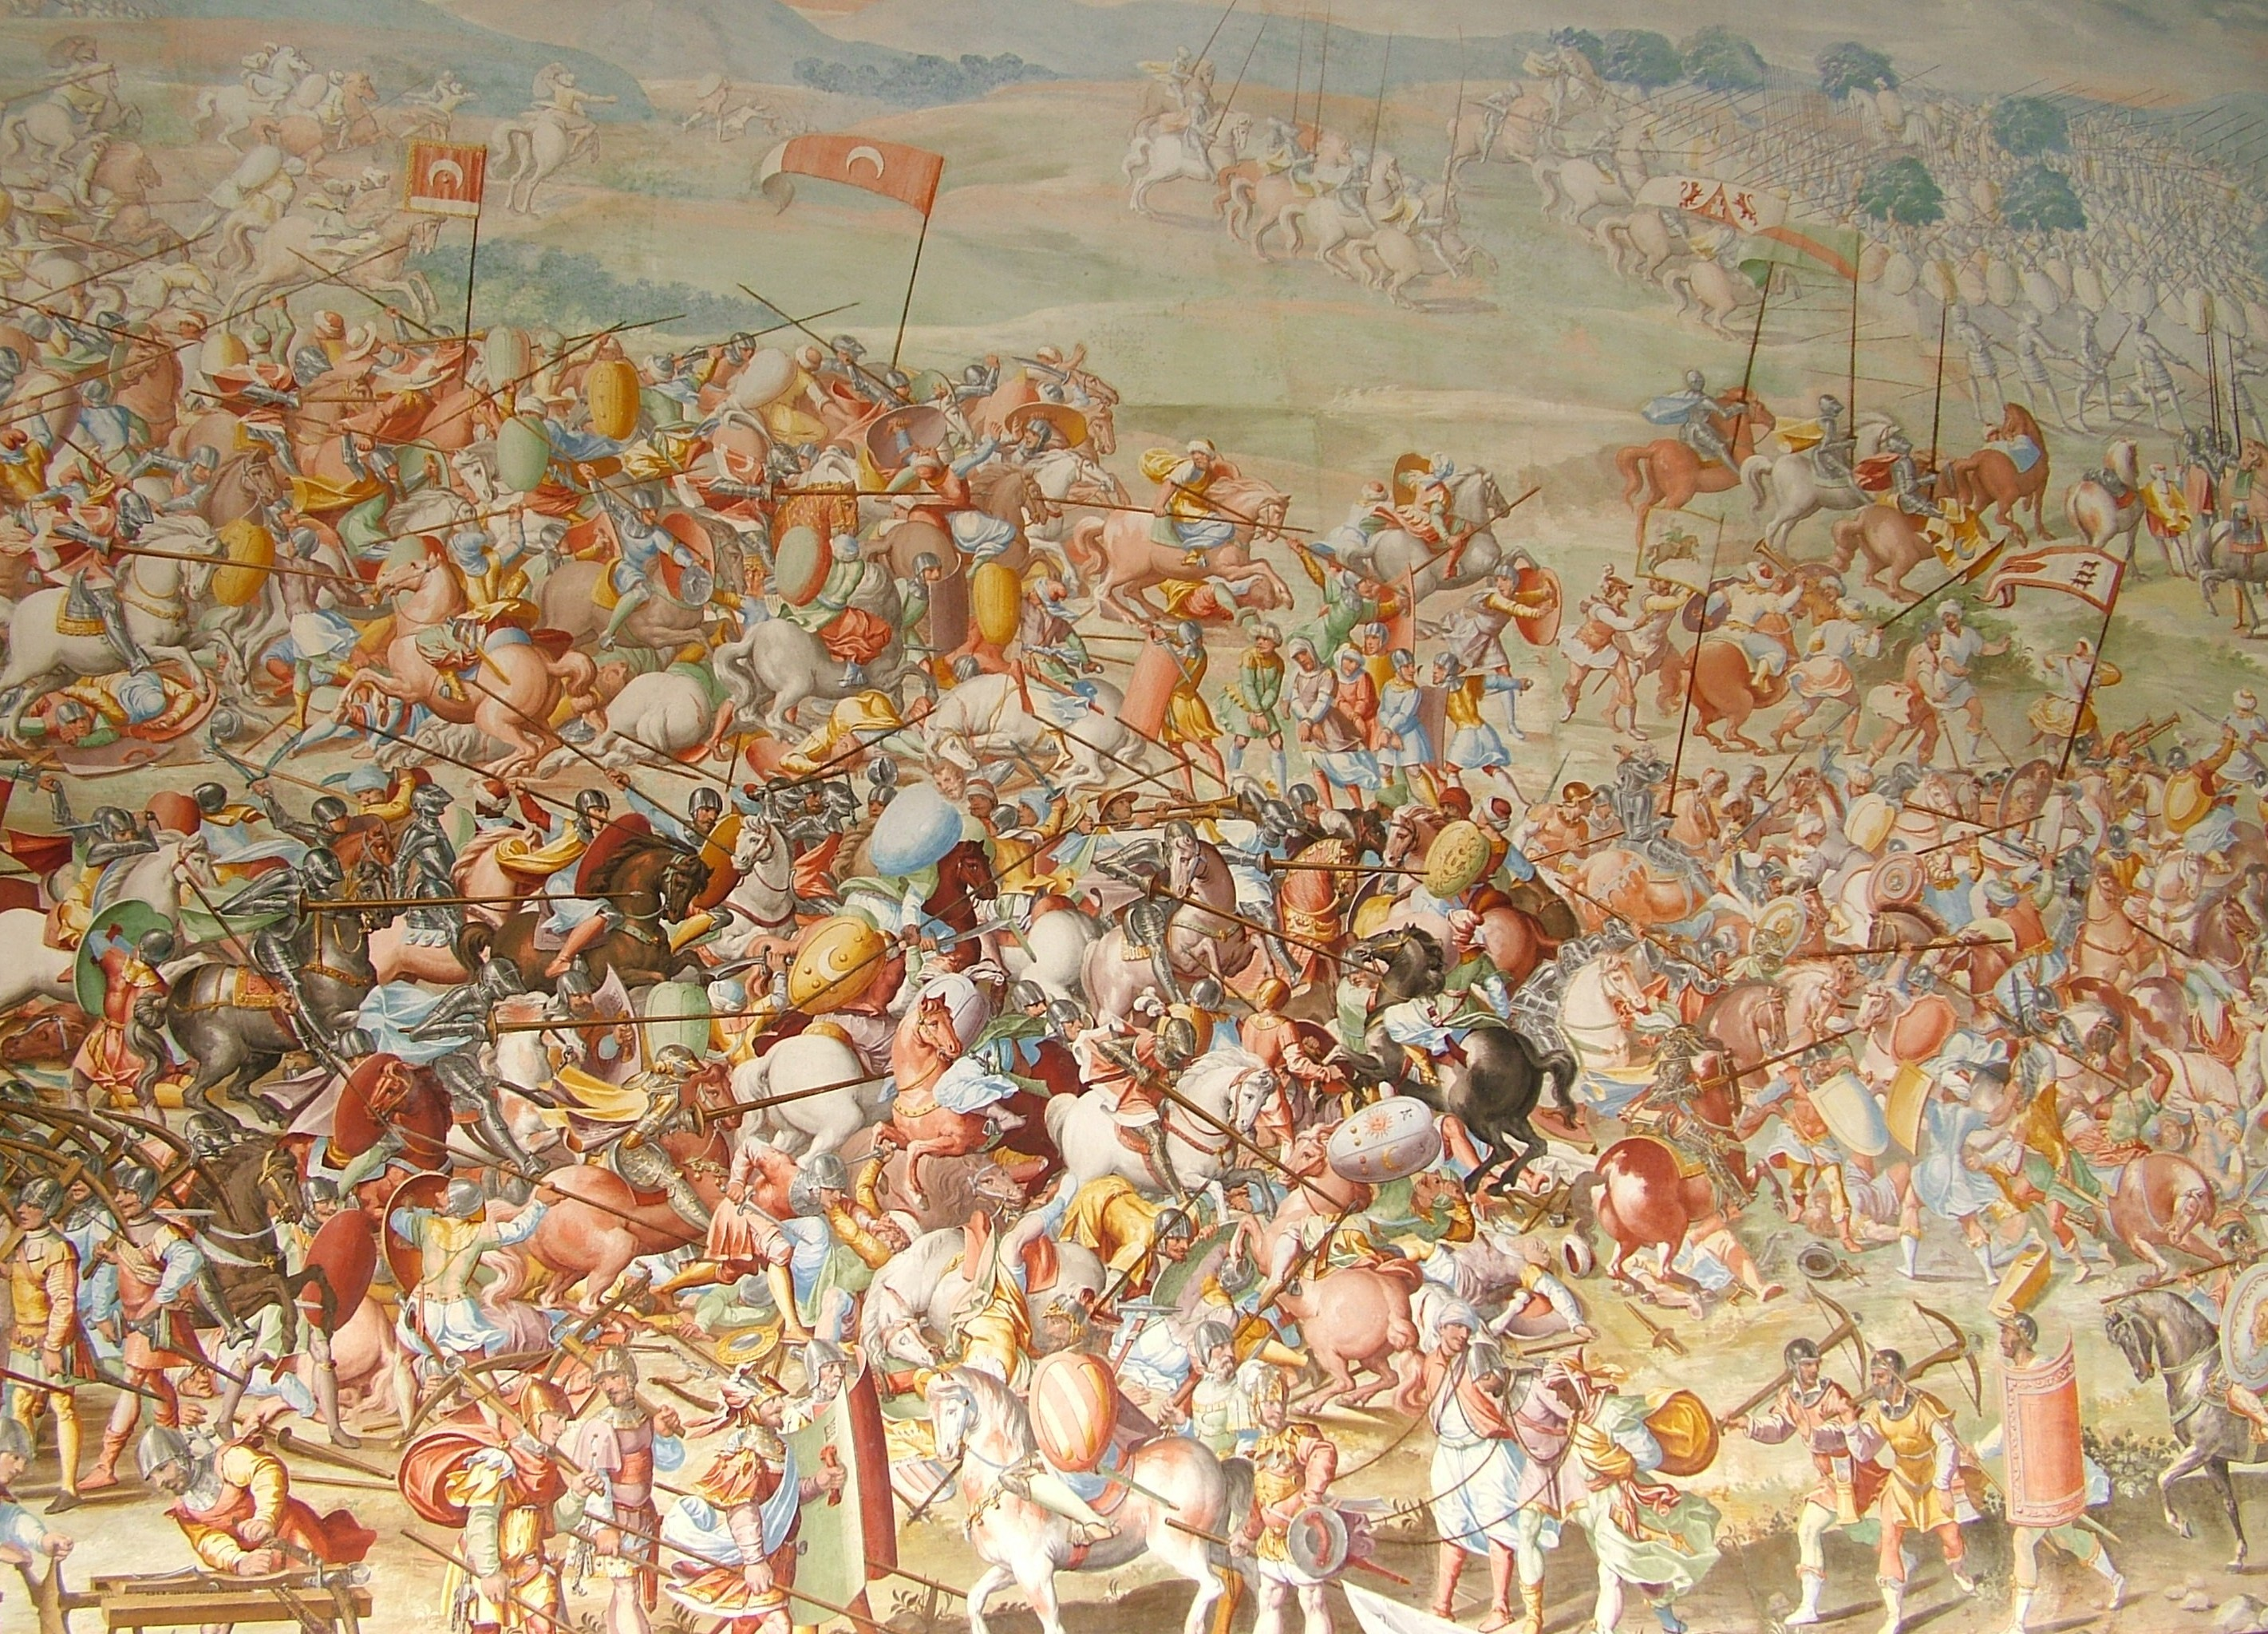 https://i2.wp.com/upload.wikimedia.org/wikipedia/commons/b/bb/Battle_of_Higueruela.jpg